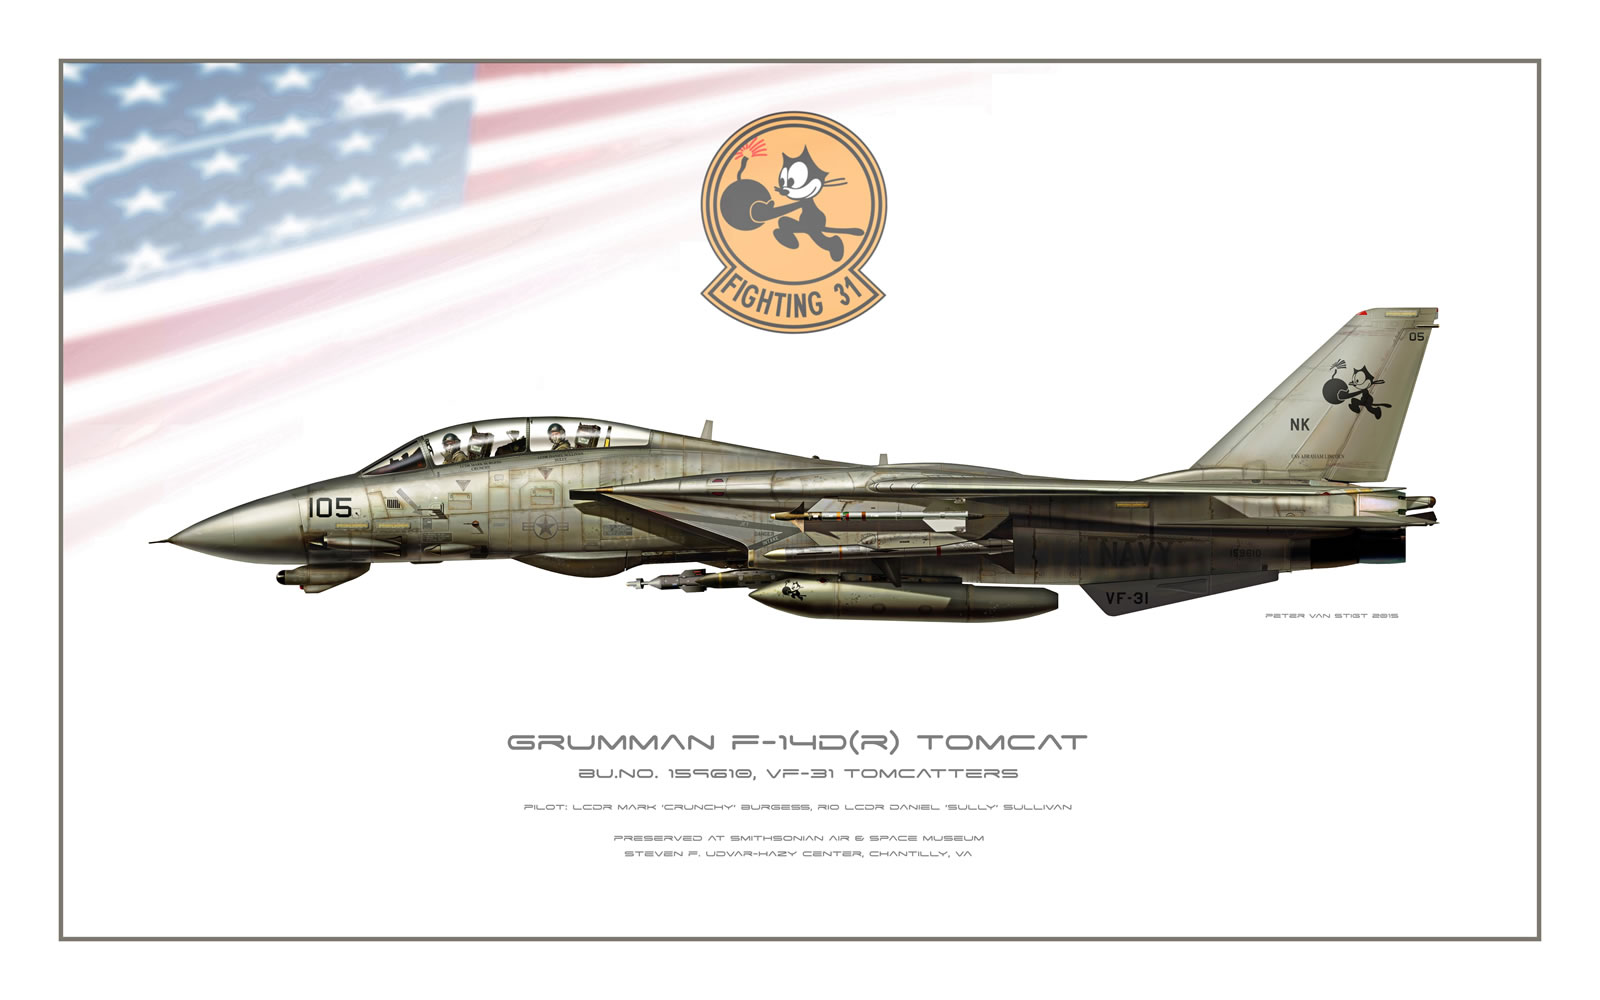 VF-31 Tomcatters at Smithsonian F-14D Tomcat Profile